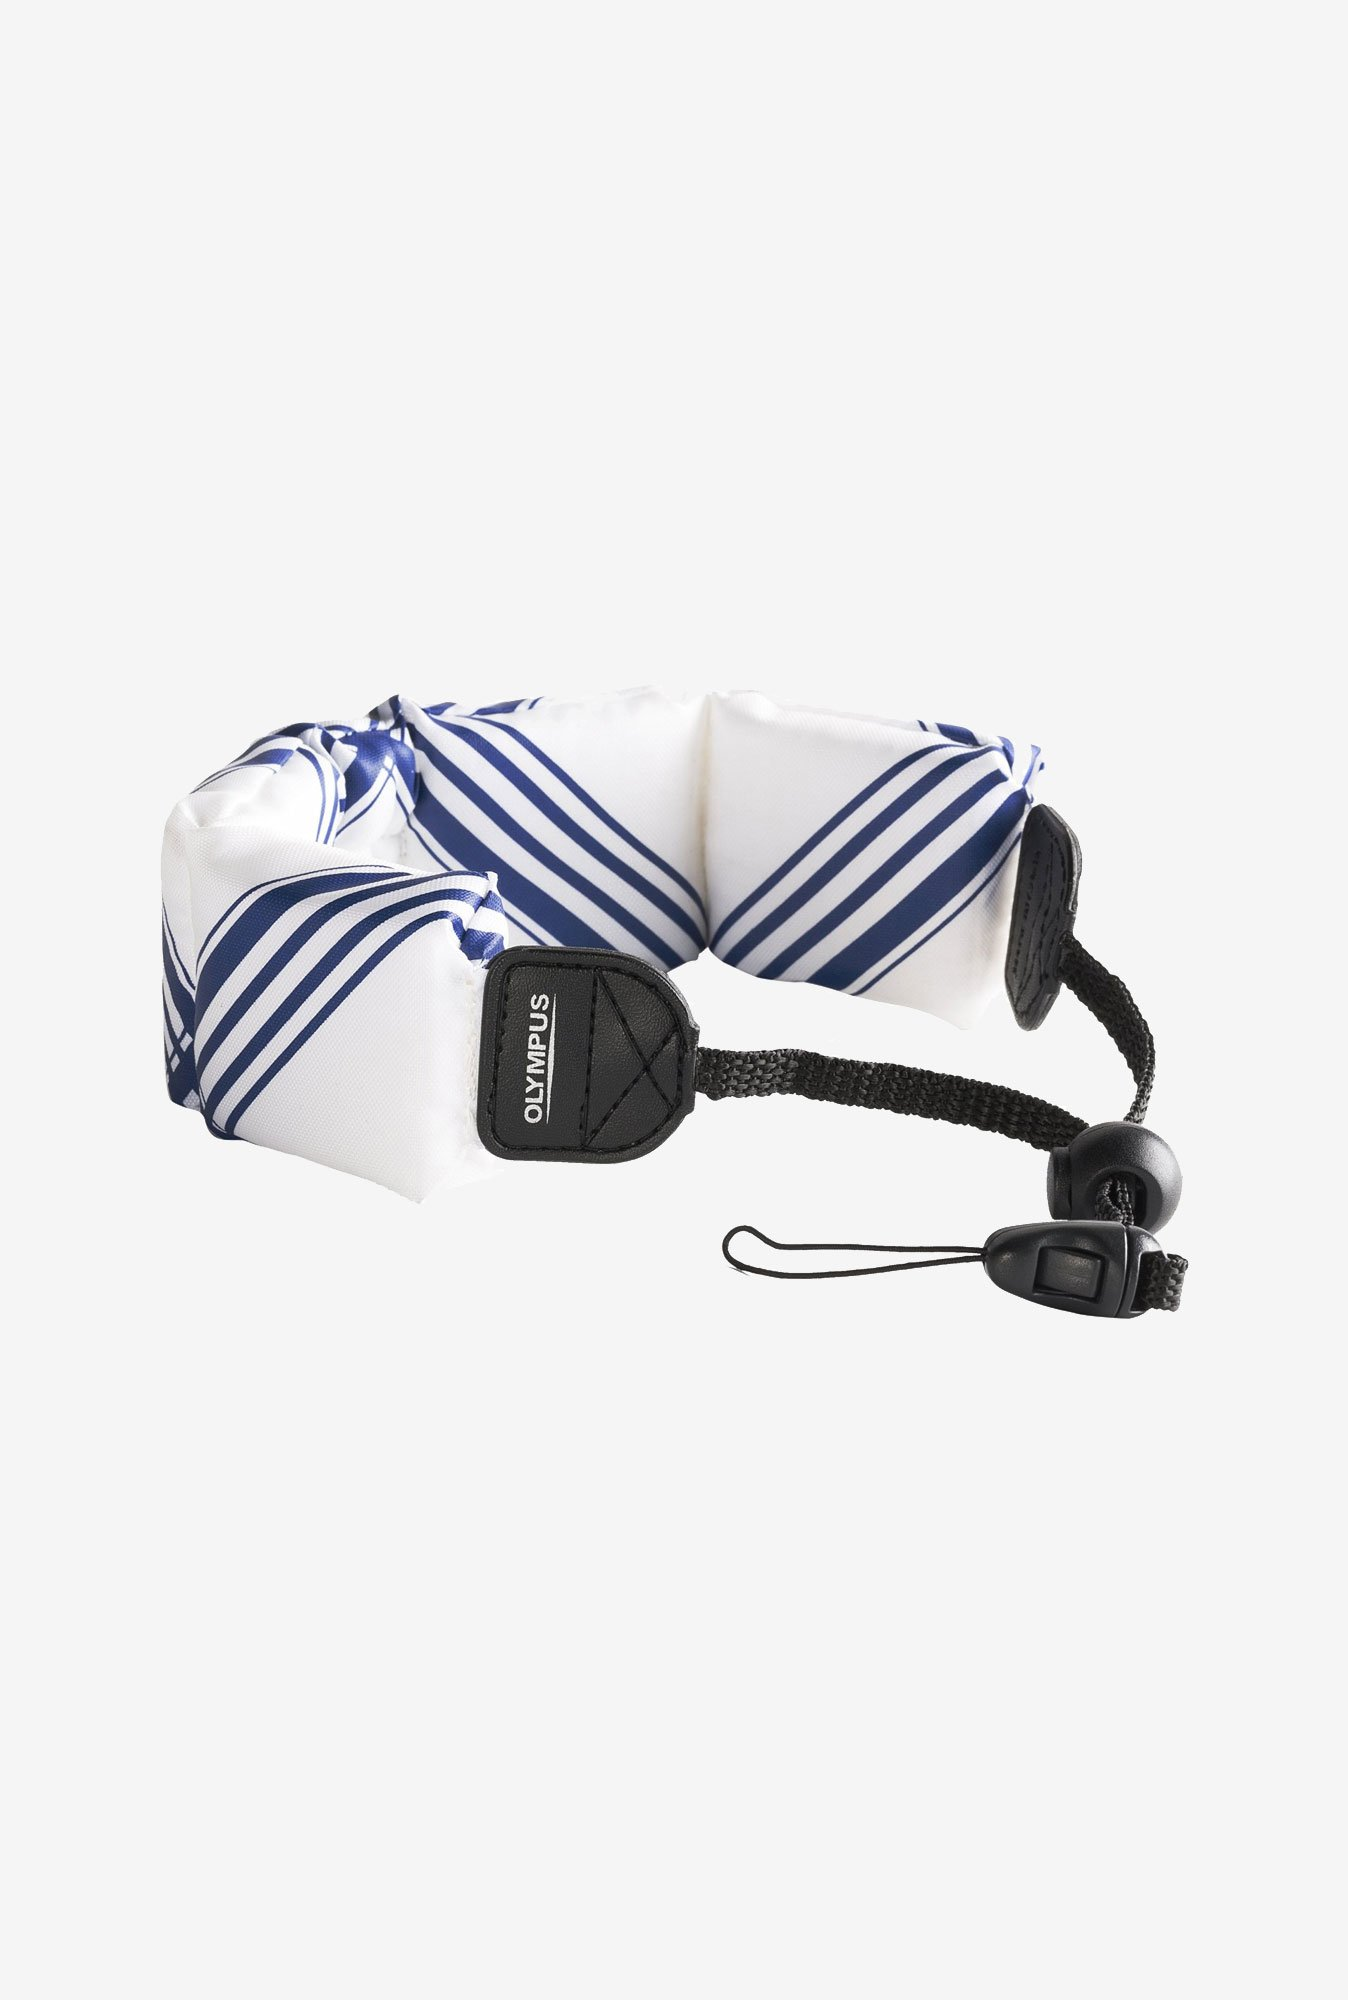 Olympus Fashion Float Strap for Camera (White/Blue)